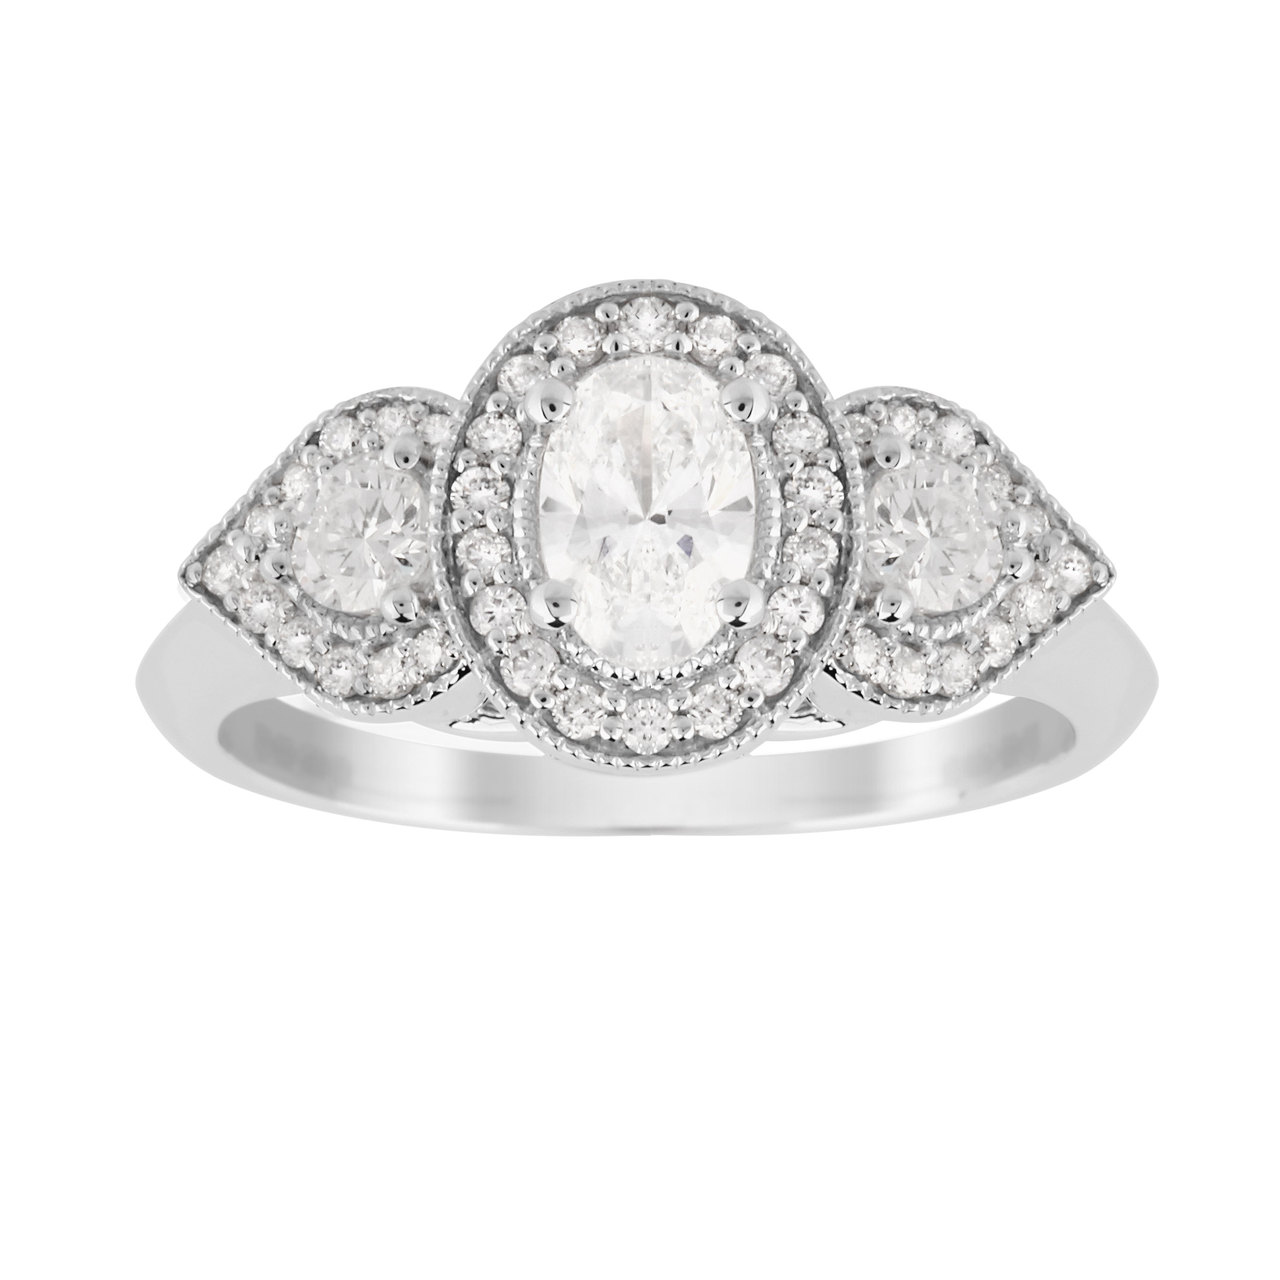 Jenny Packham Three Stone Oval Cut 0.95 Carat Total Weight Diamond Art Deco Style Ring in 18 Carat W